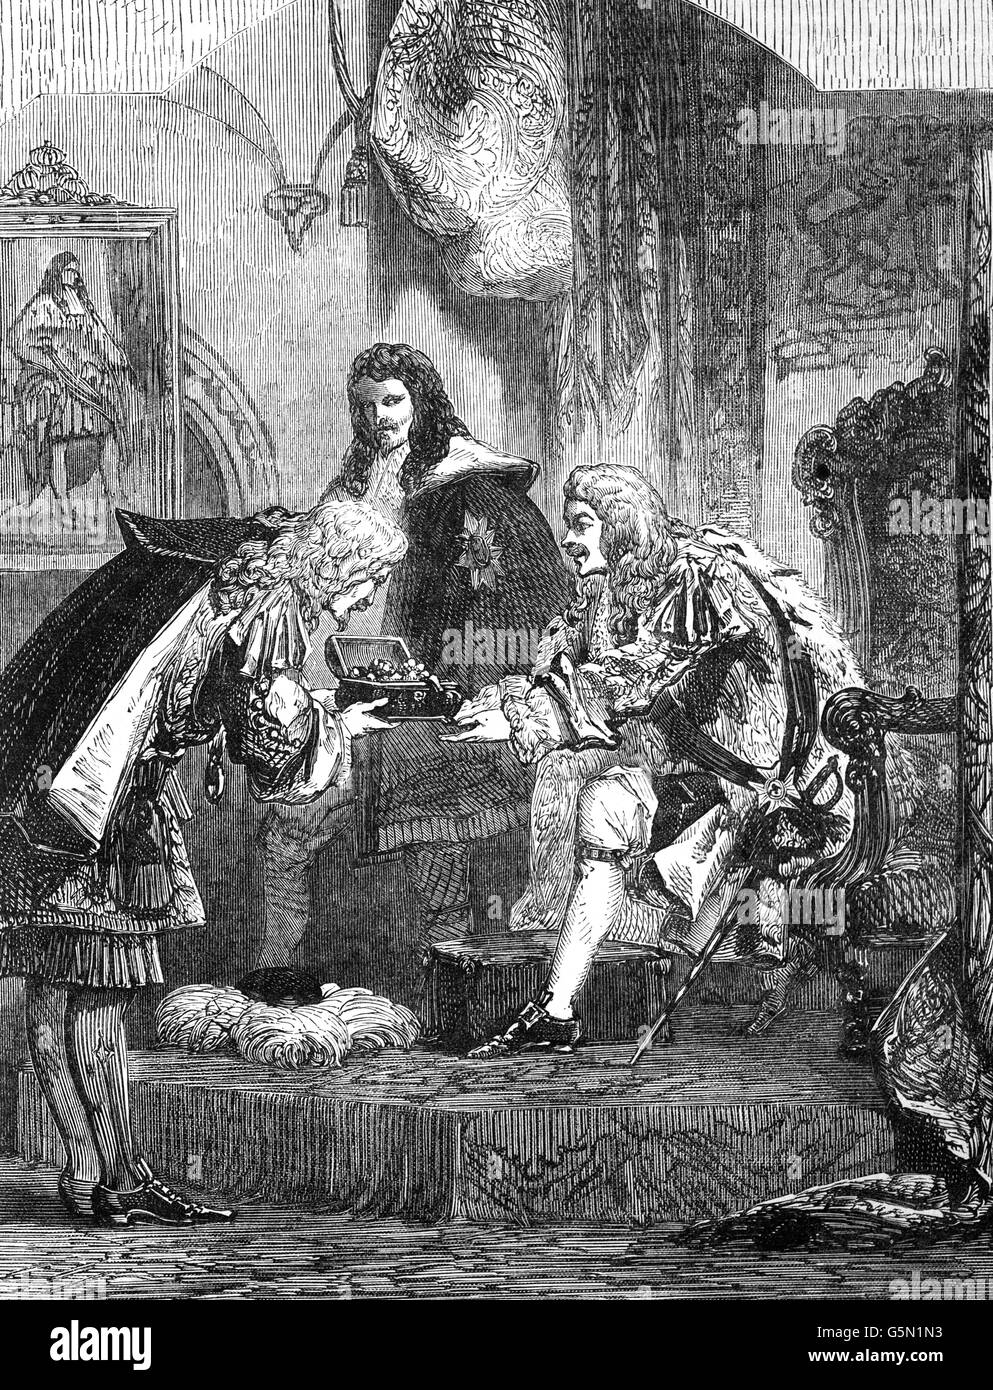 King James II receiving a bribe from the French around 1685. - Stock Image